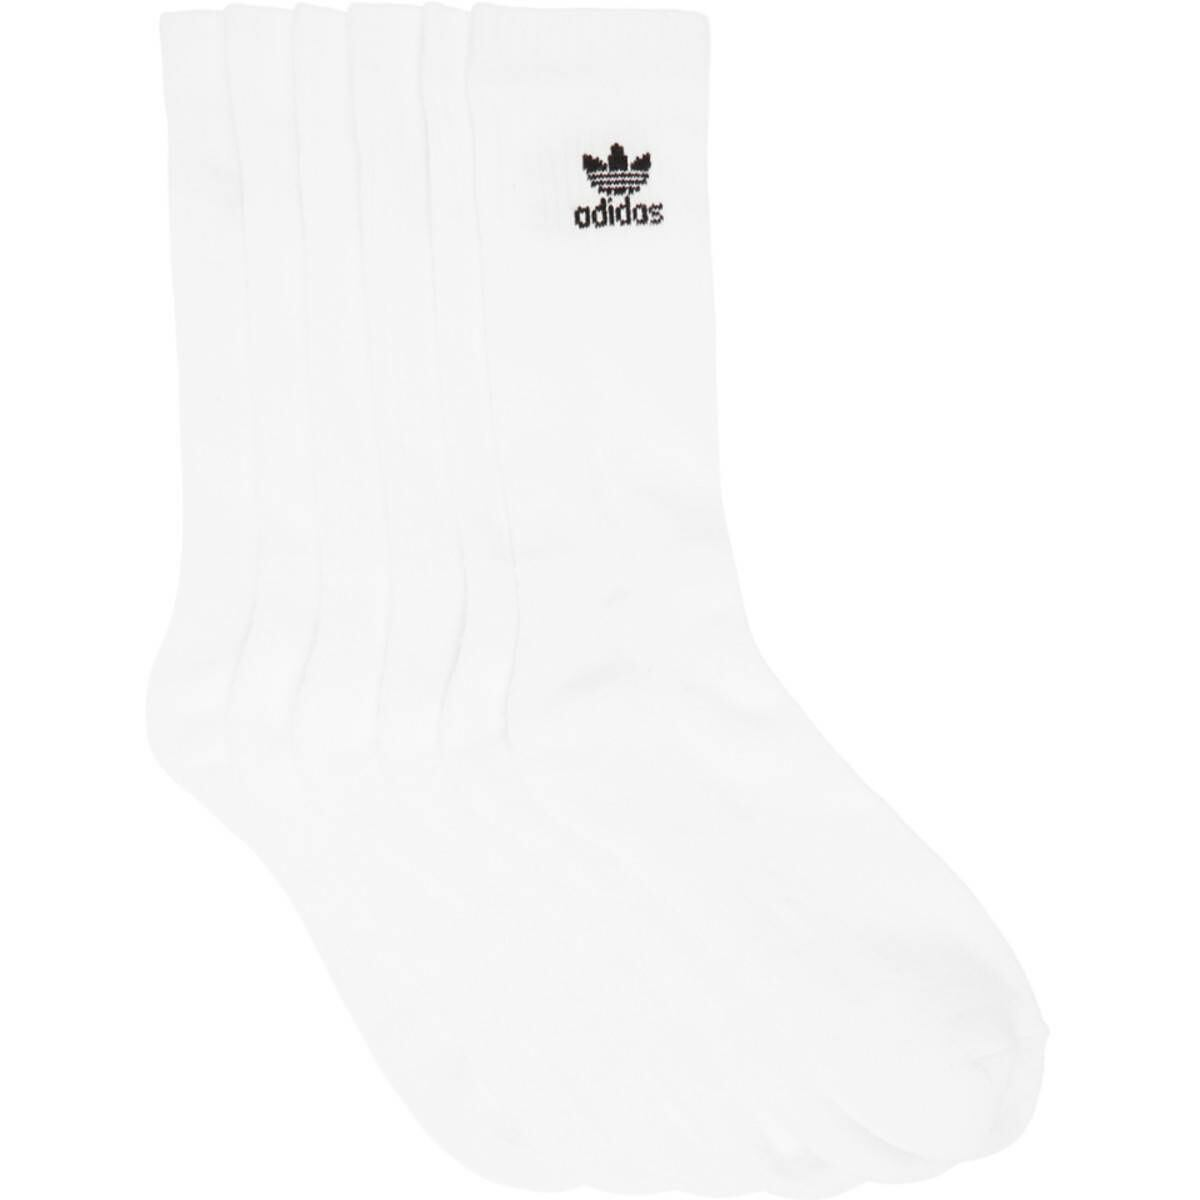 adidas Originals Six-Pack White Solid Crew Socks Ssense USA MEN Men ACCESSORIES Mens SOCKS